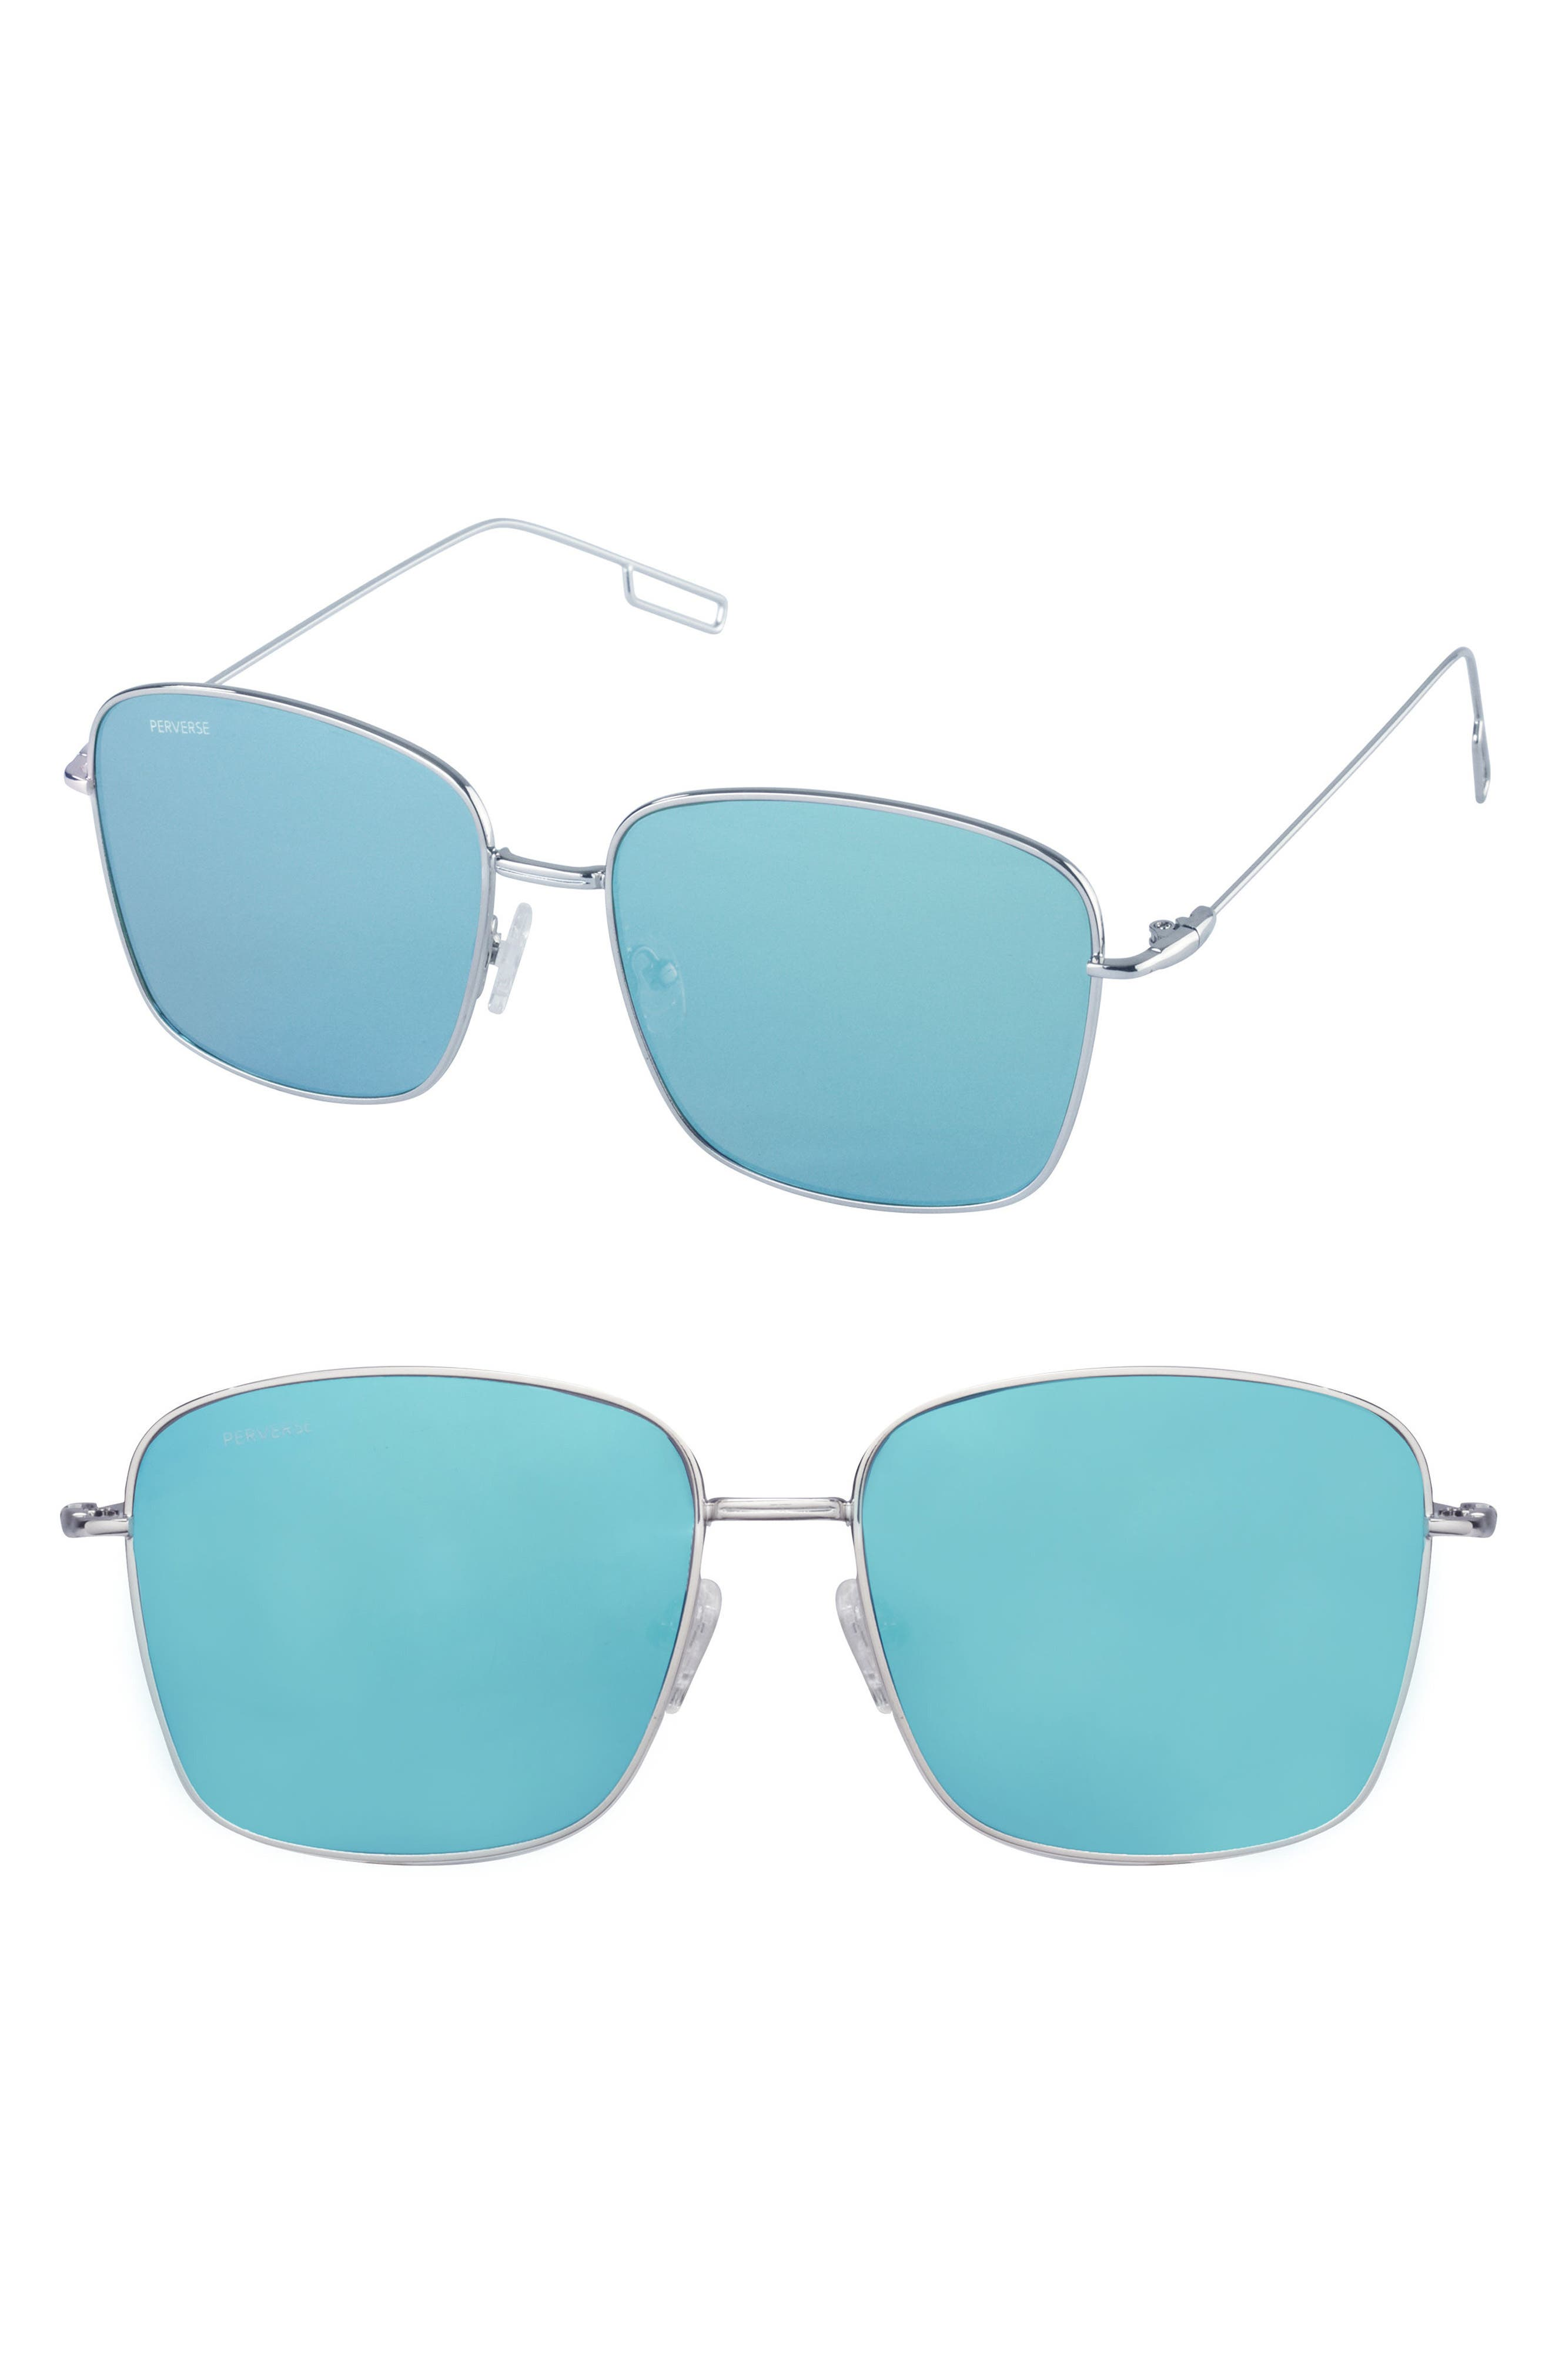 Emily 58mm Mirrored Square Sunglasses,                             Main thumbnail 1, color,                             400